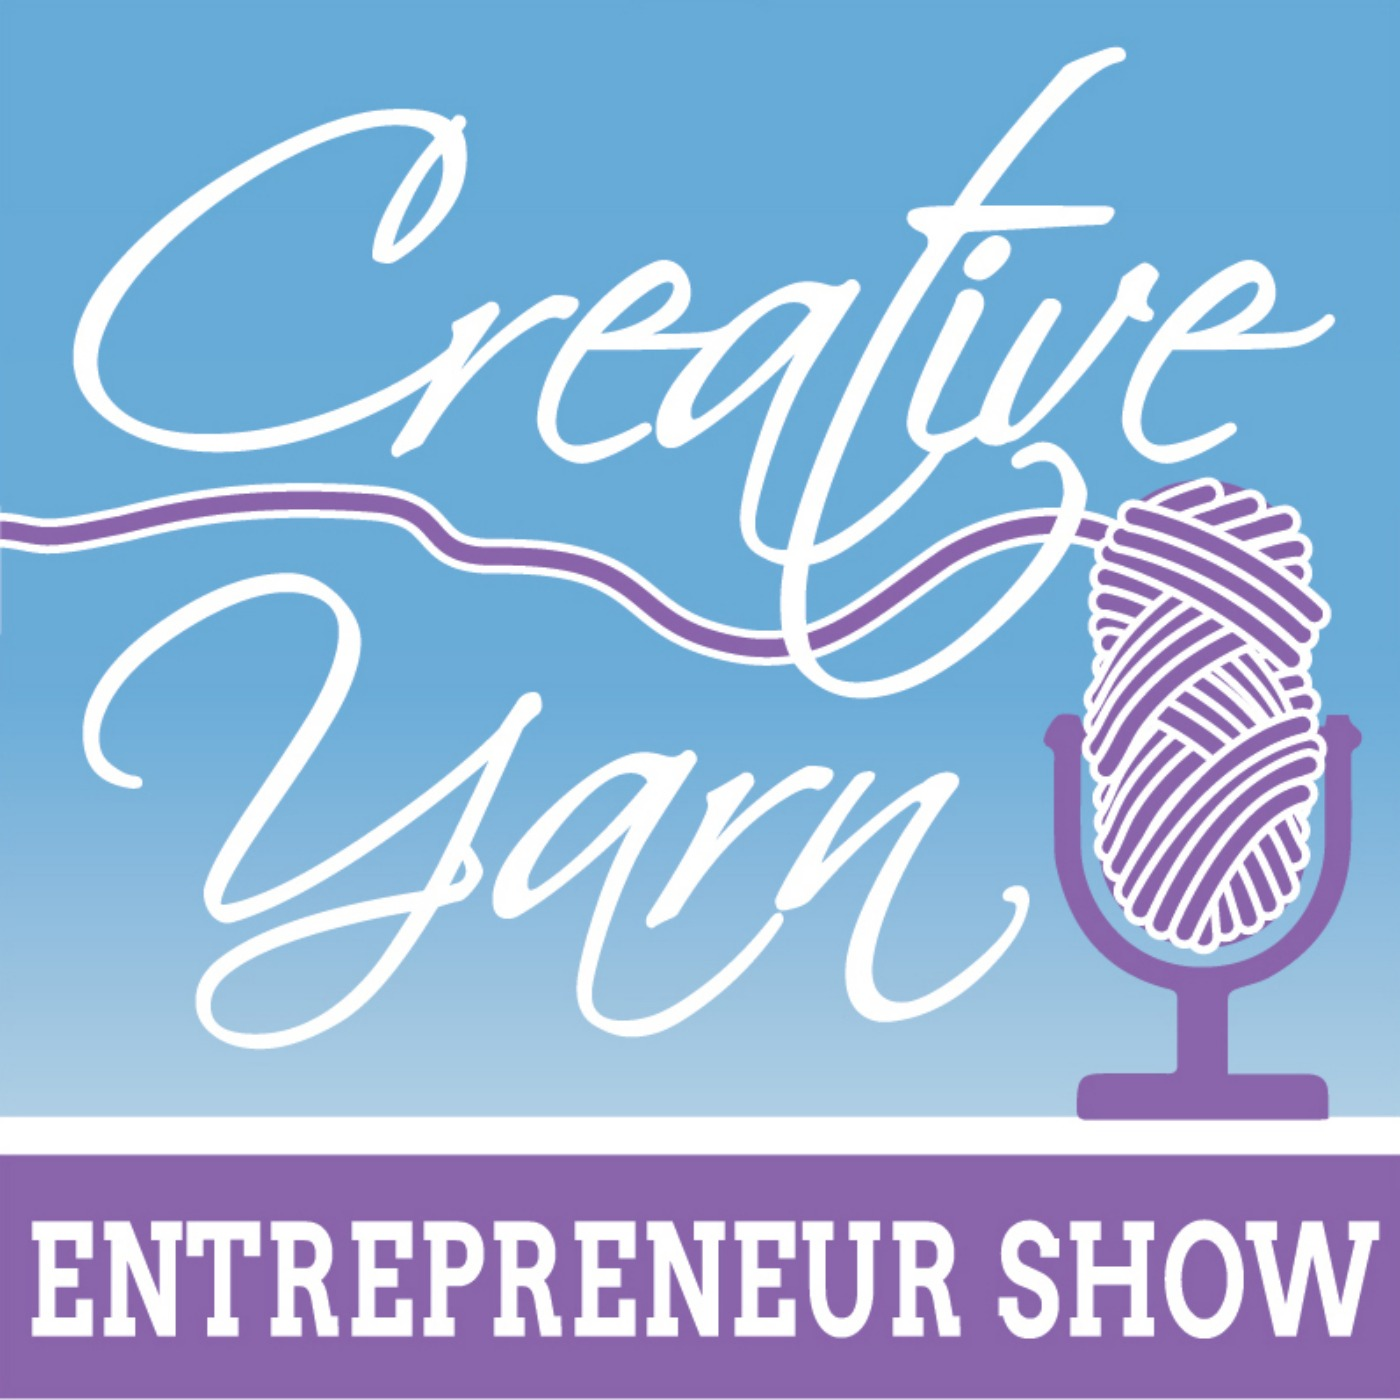 Episode 46: 8 Free and Low-Cost Resources for Professional Development for Your Yarn-Related Business - The Creative Yarn Entrepreneur Show